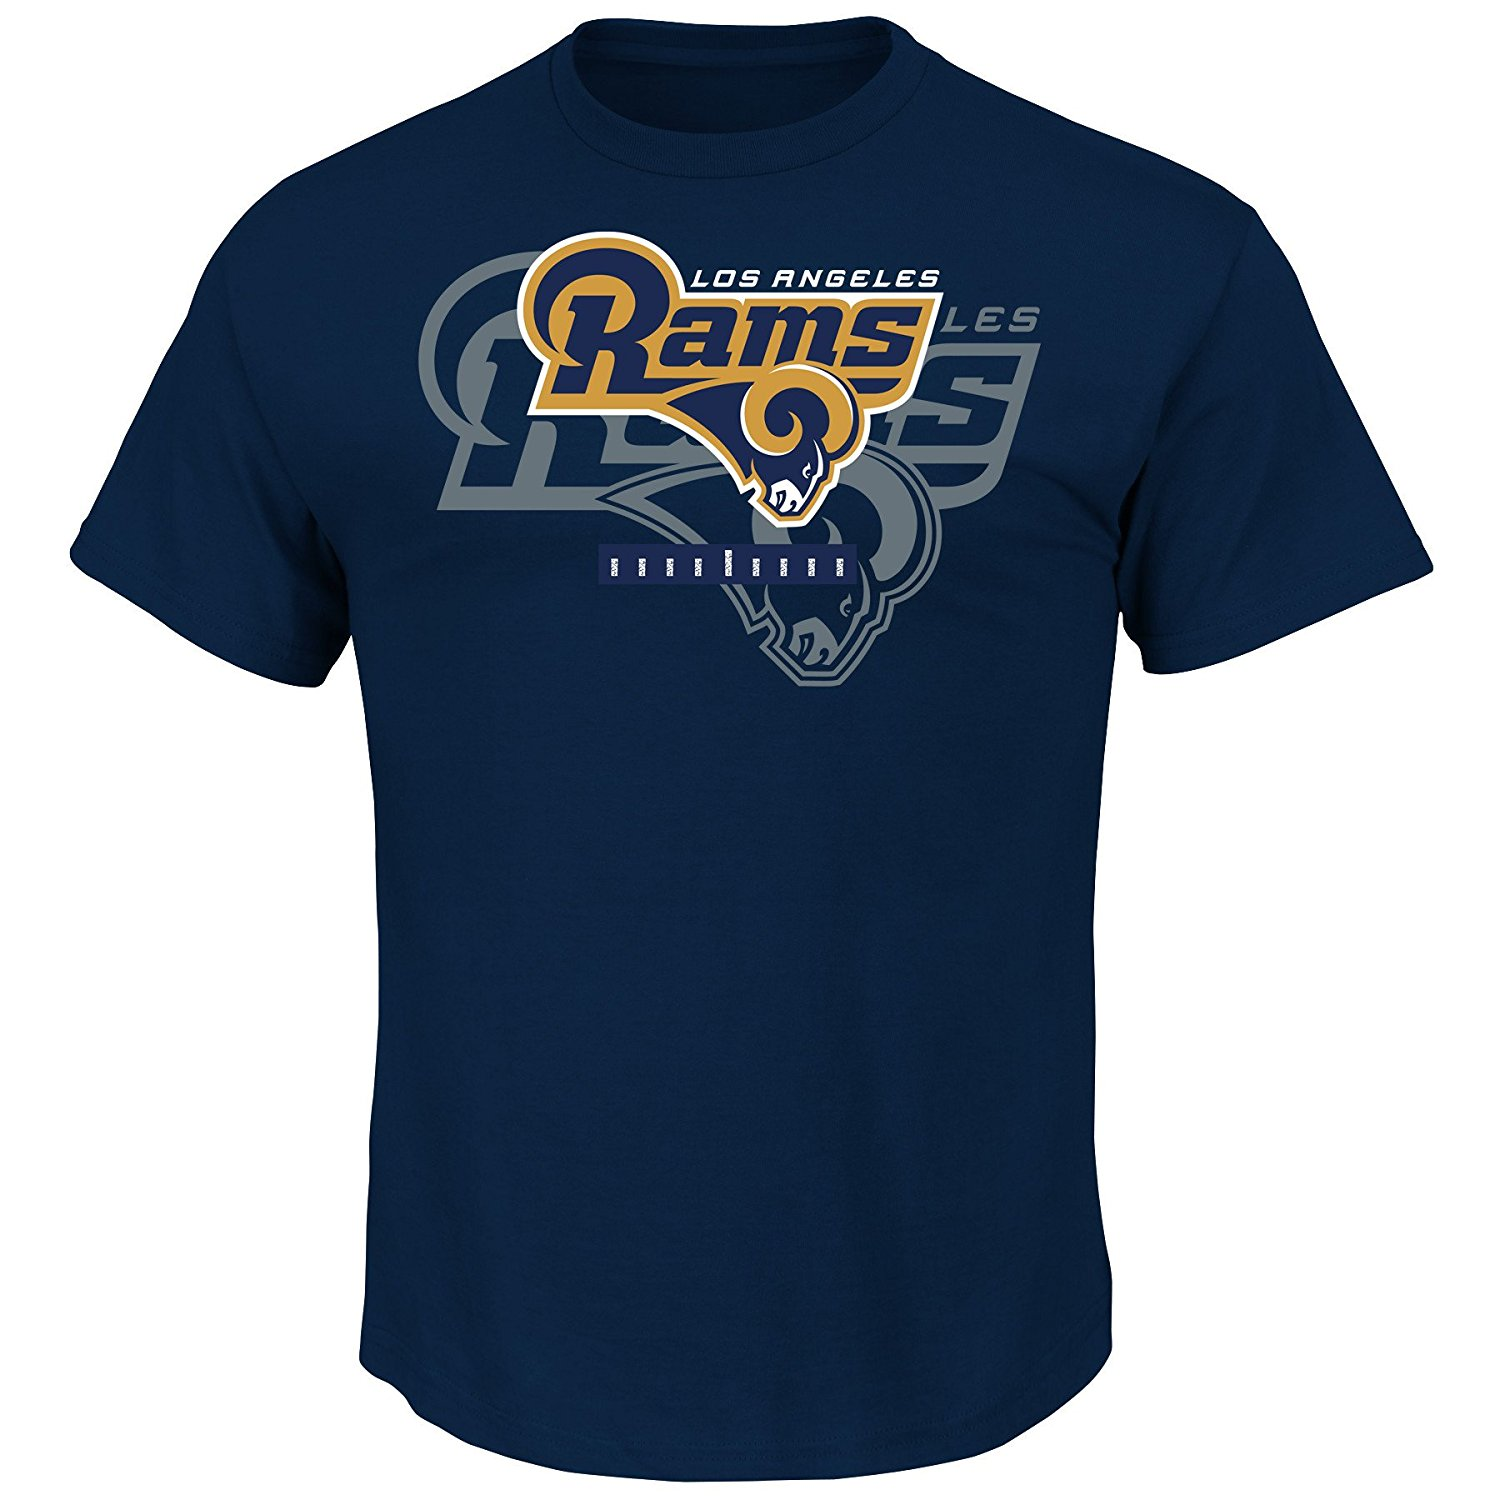 "Los Angeles Rams Majestic NFL ""Of Great Value"" Men's Short Sleeve T-Shirt"